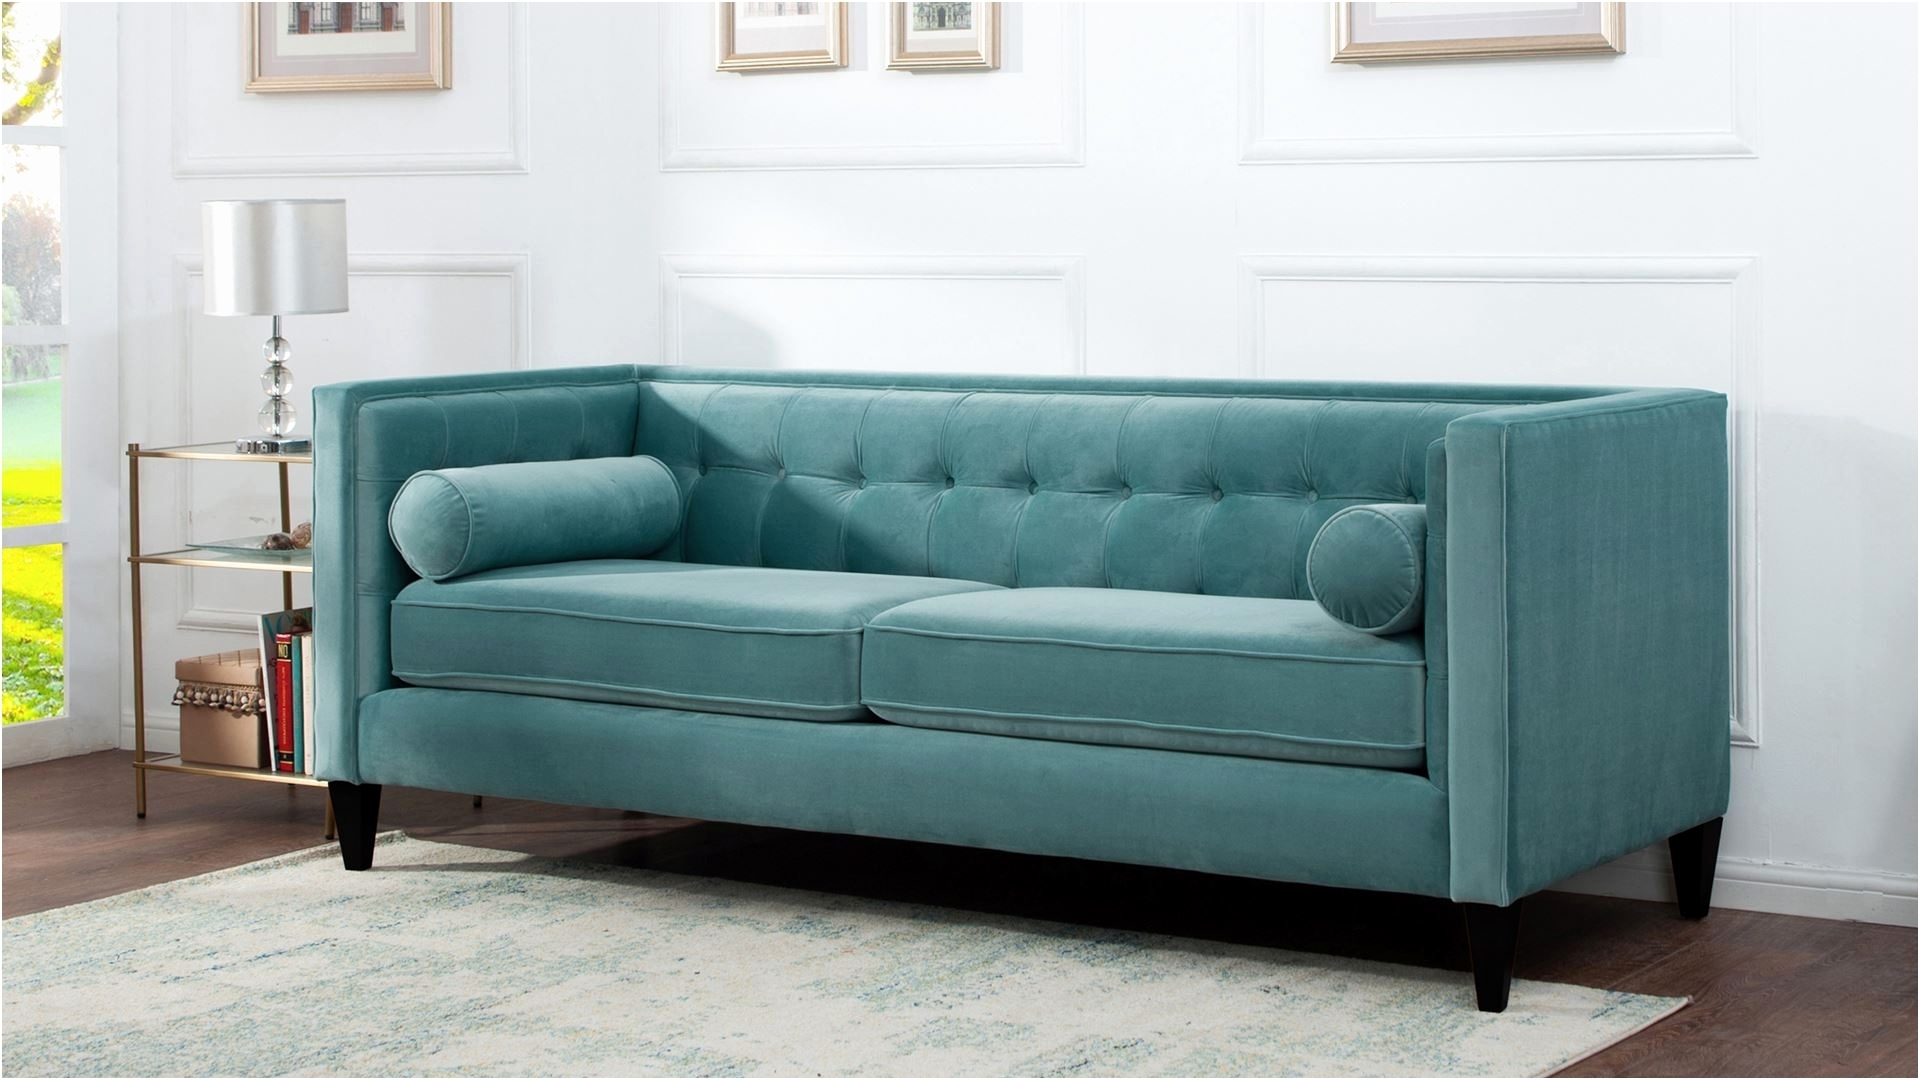 Newest Turquoise Sofas Intended For Sofas : Black Leather Sofa Natuzzi Leather Sofa Turquoise Leather (View 9 of 20)